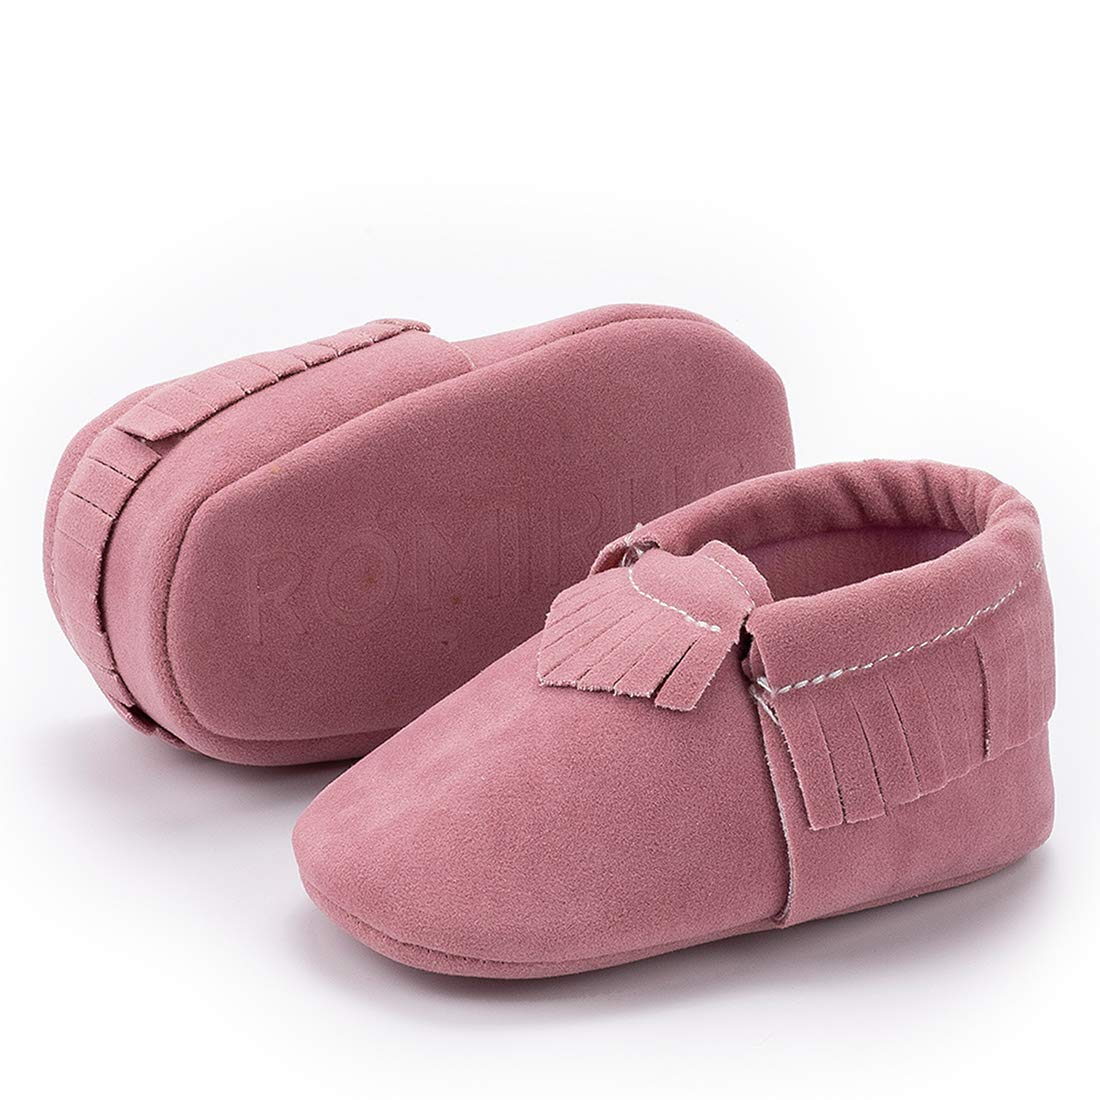 CENCIRILY Infant Toddler Baby Boys Girls Cozy Moccasins Tassels Suede Leather Sole First Walkers Soft Crib Shoes Multi-Colors